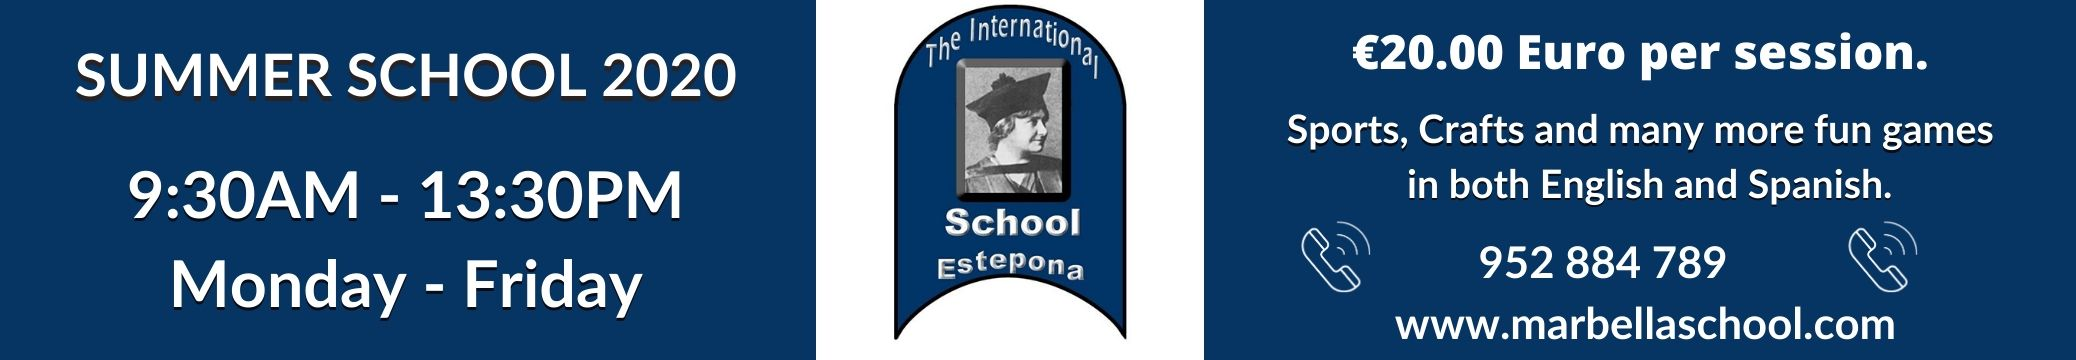 summer school estepona